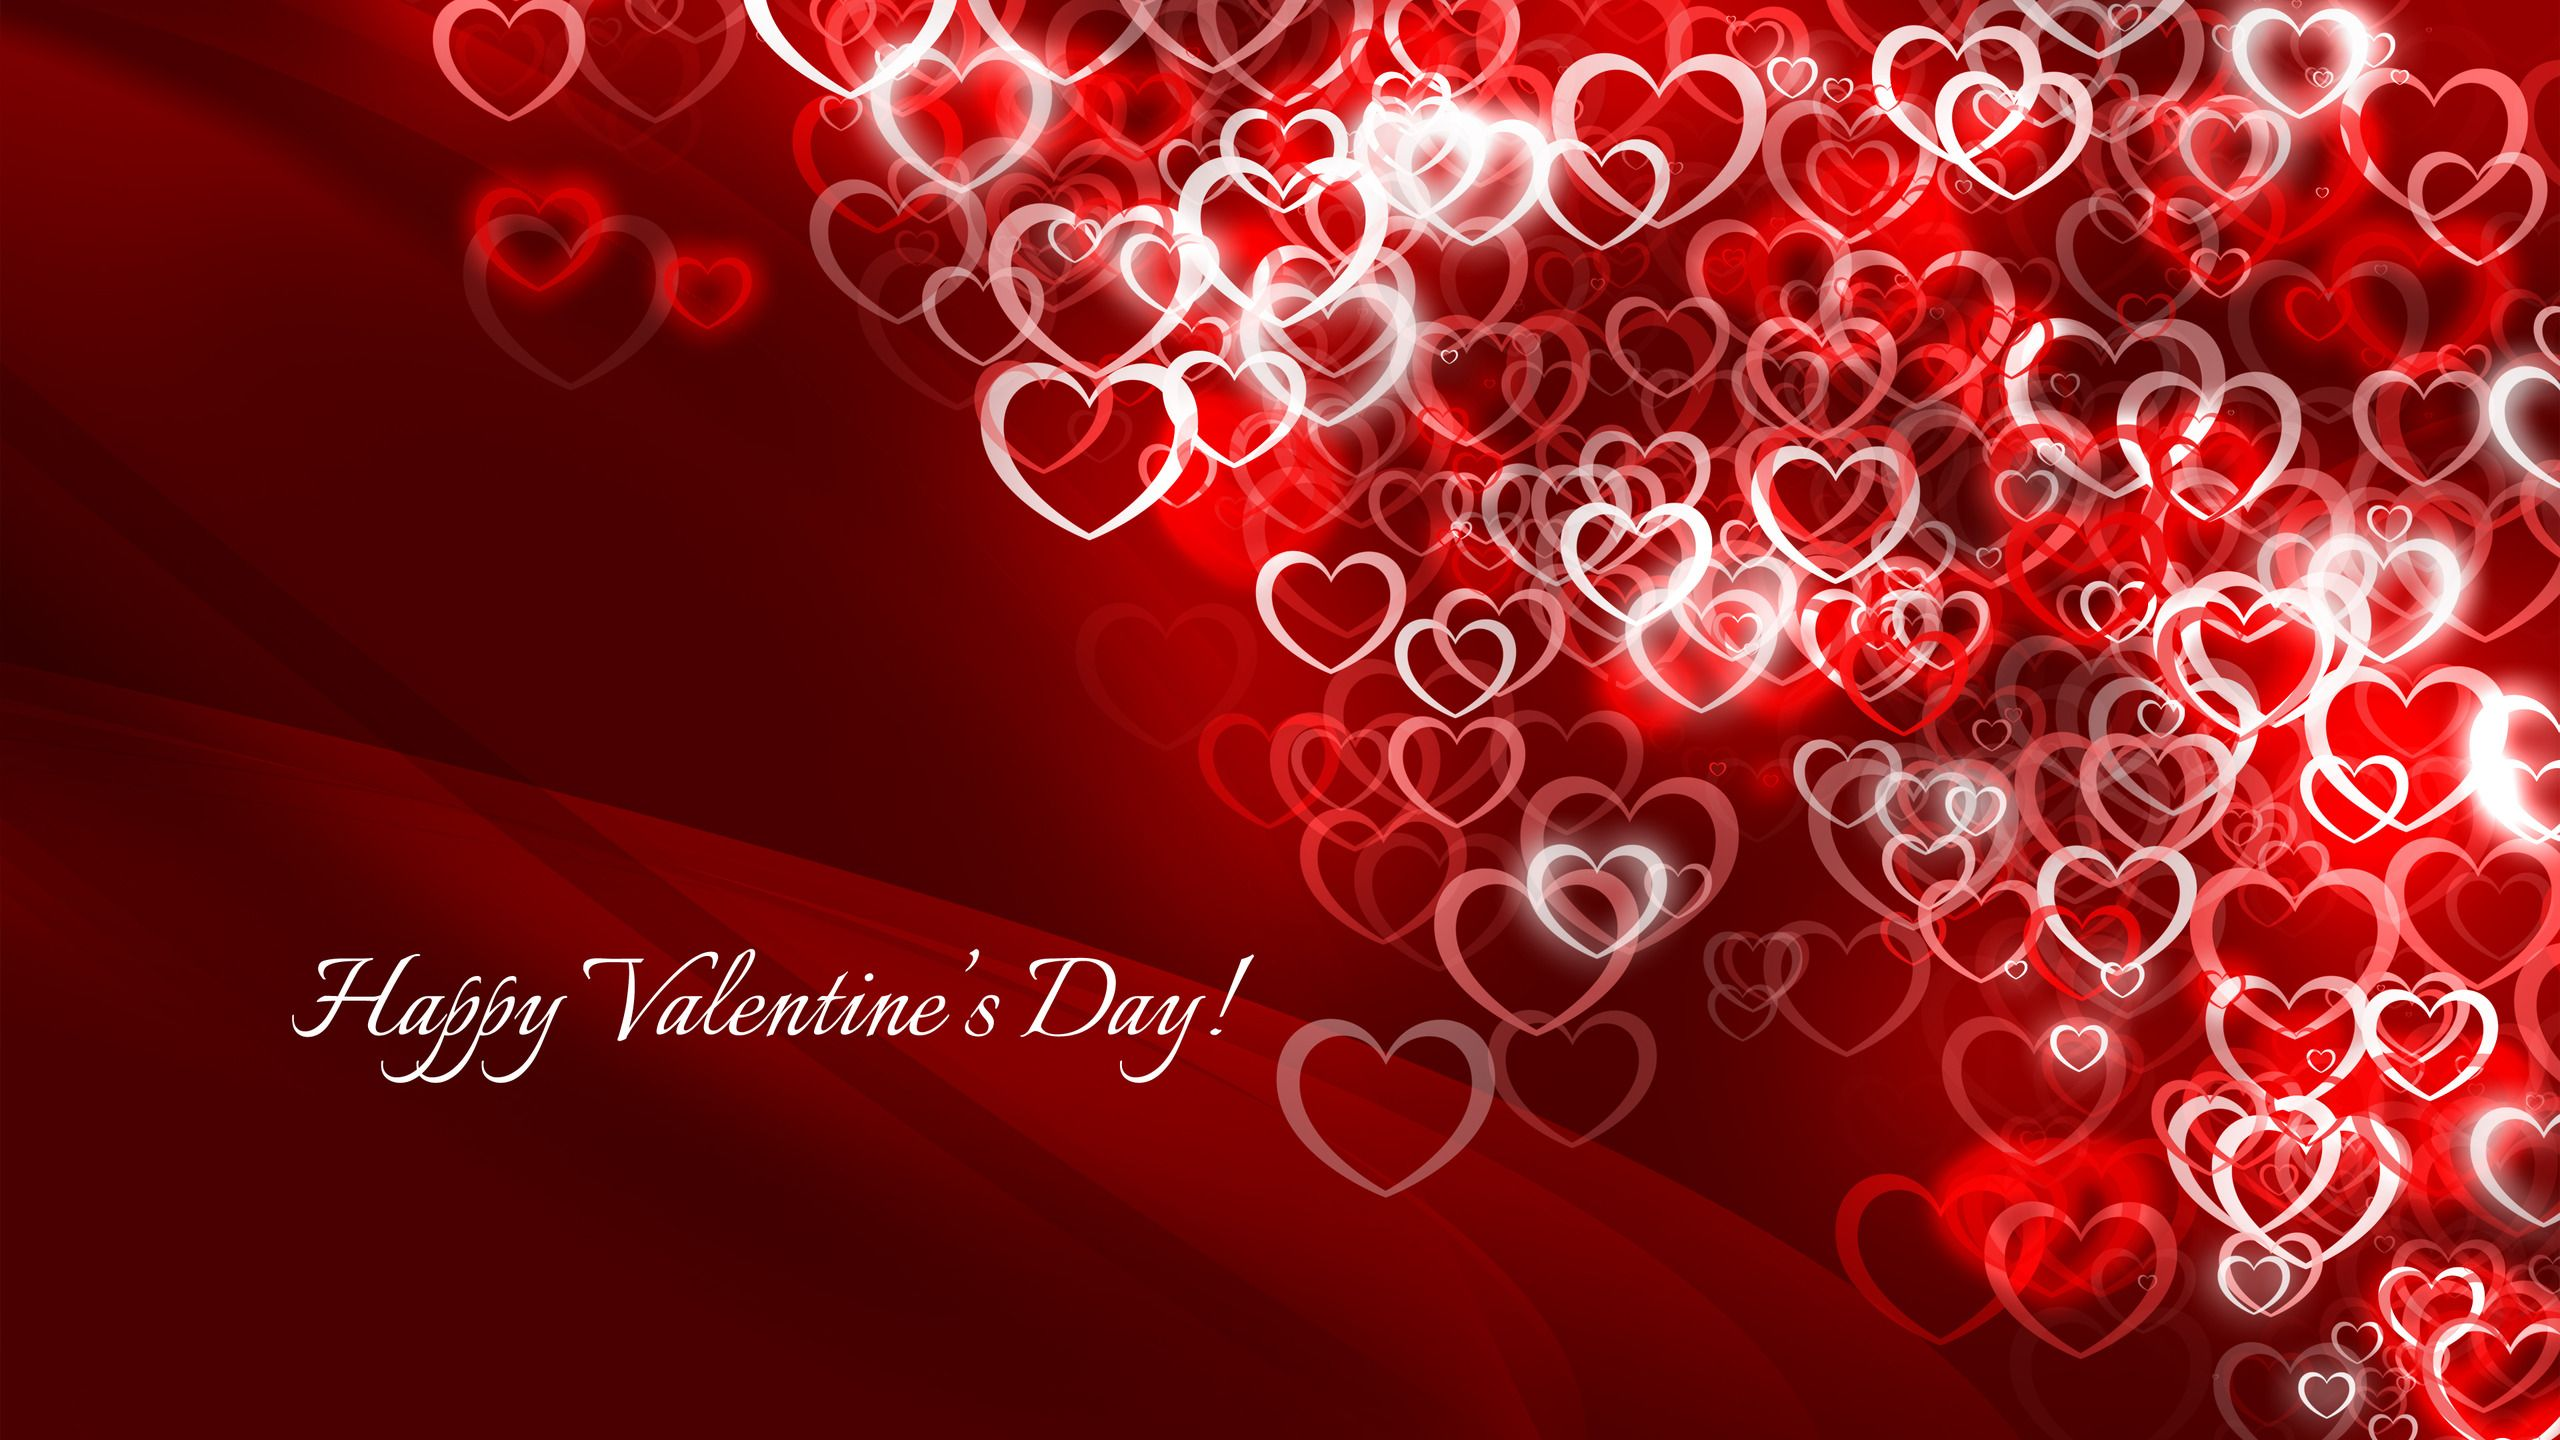 Valentines day Wallpaper Valentines Day Pinterest